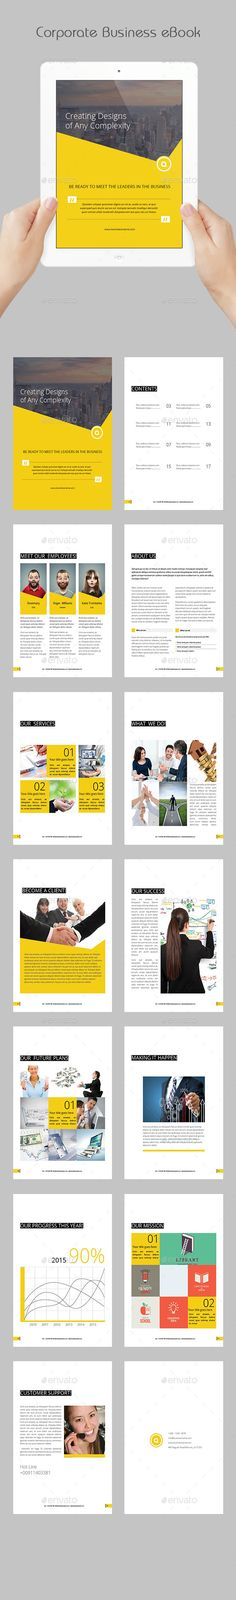 Corporate Business eBook Template #design #epublishing Download: http://graphicriver.net/item/corporate-business-ebook/11972523?ref=ksioks